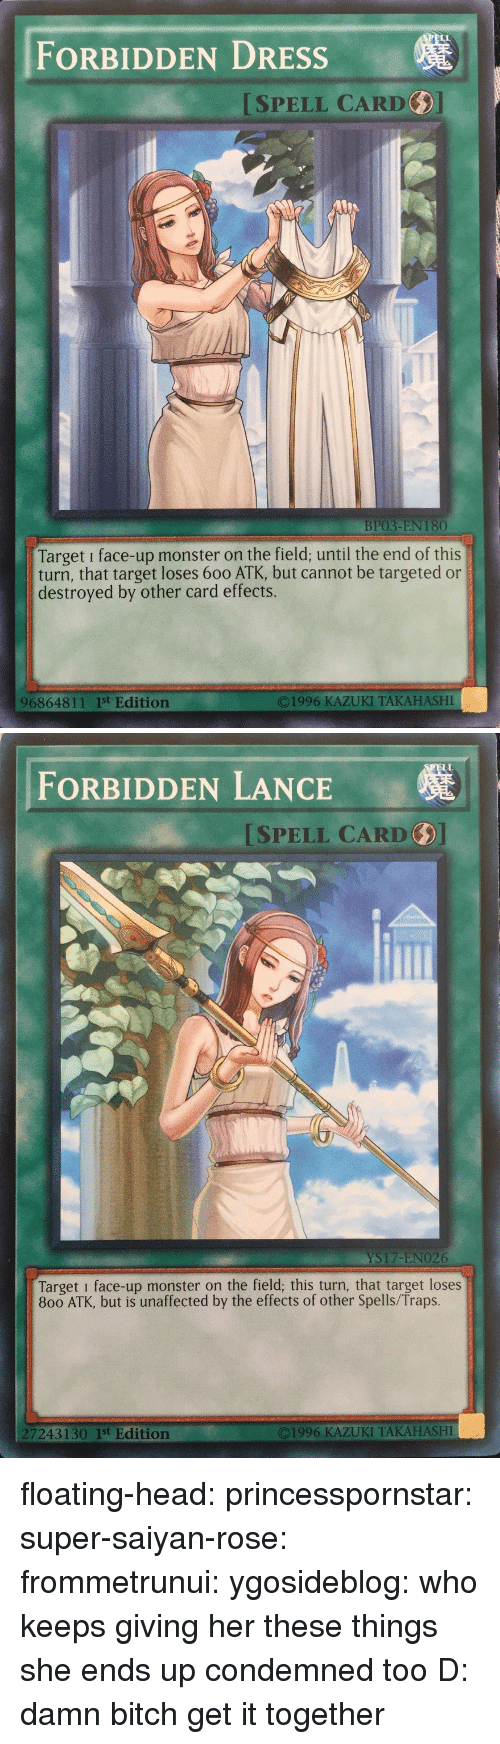 Bitch, Head, and Monster: FORBIDDEN DRESSs  ISPELL CARD  BP03-EN 180  Target i face-up monster on the field; until the end of this  turn, that target loses 600 ATK, but cannot be targeted or  destroyed by other card effects.  96864811 1st Edition  O1996 KAZUKI TAKAHASHI   ELL  FORBIDDEN LANCE  SPELL CARD  YS17-ENO26  Target i face-up monster on the field; this turn, that target loses  800 ATK, but is unaffected by the effects of other Spells/Traps.  7243130 1st Edition  ©1996 KAZUKI TAKAHASHI floating-head: princesspornstar:  super-saiyan-rose:  frommetrunui:   ygosideblog: who keeps giving her these things   she ends up condemned too D:    damn bitch get it together